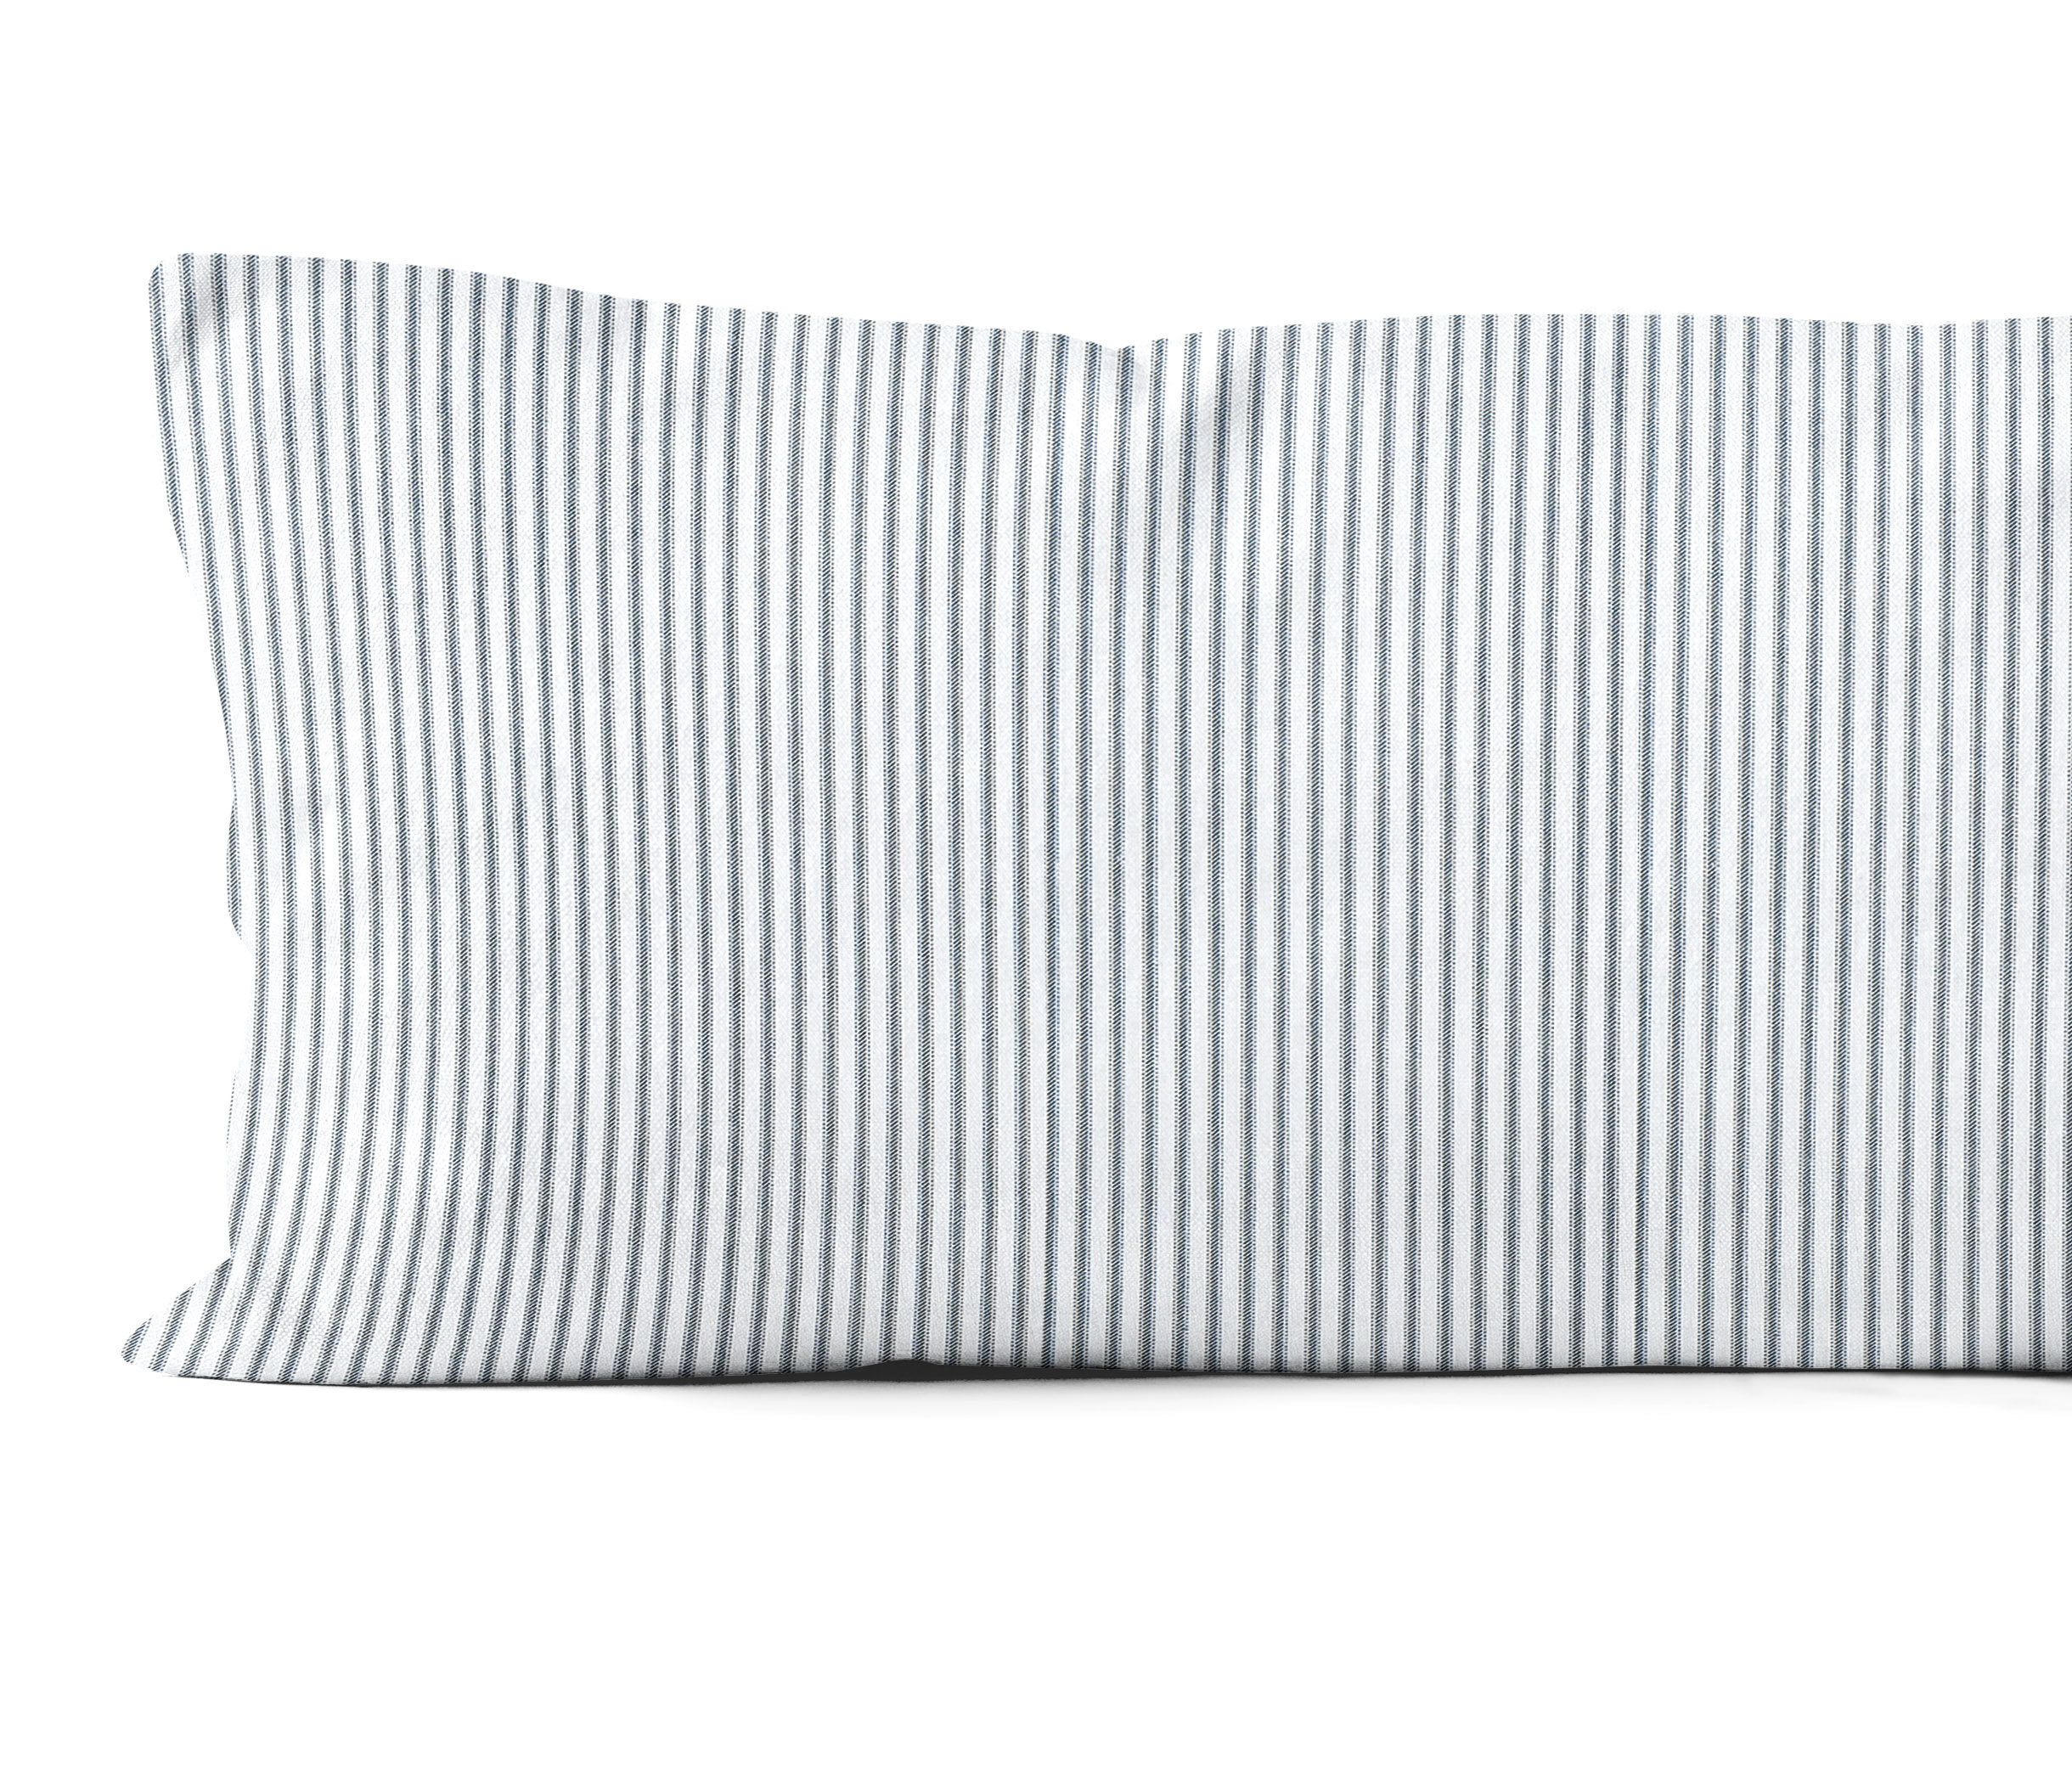 ticking body pillow cover 20x54 in navy